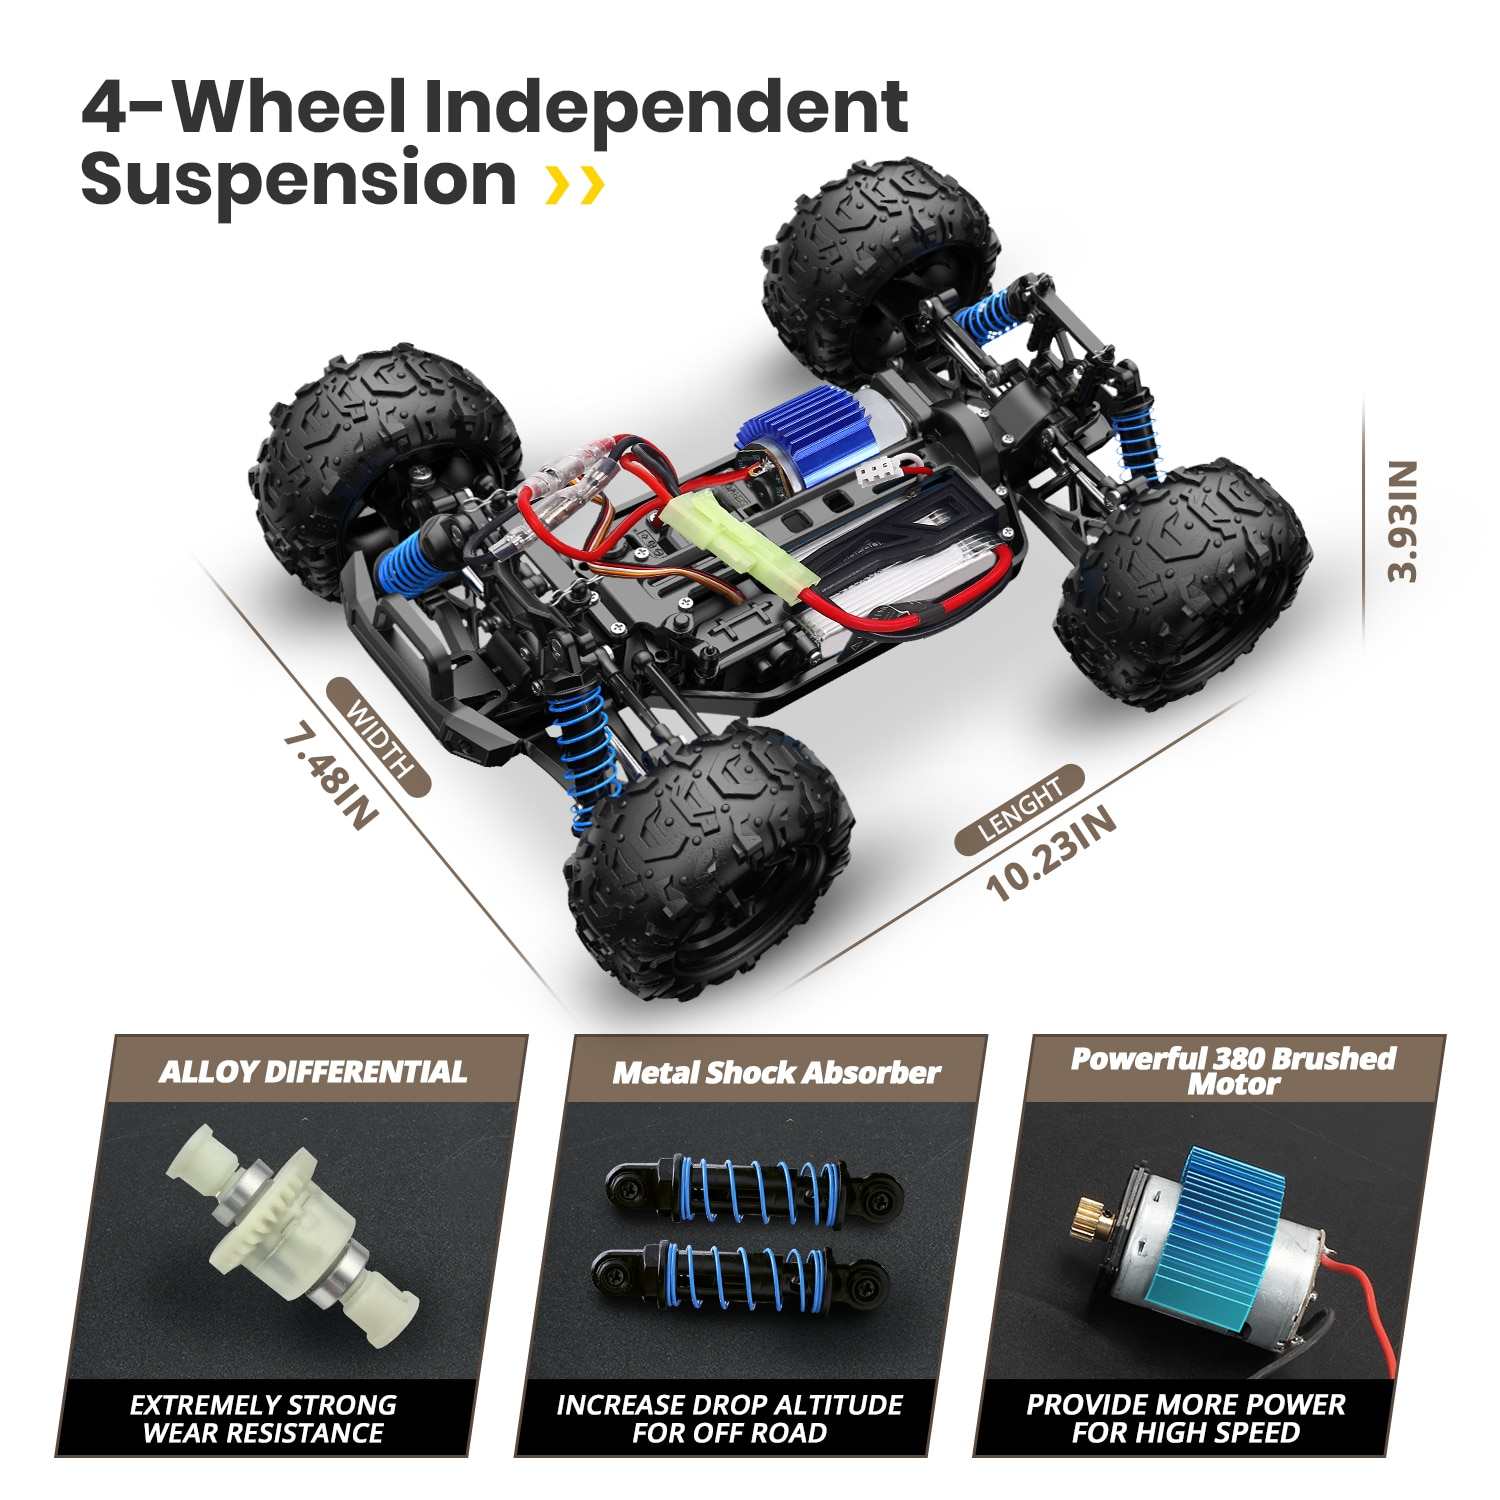 DEERC RC Cars 9310 High Speed Remote Control Car for Adults Kids 30+MPH, 1:18 Scales 4WD Off Road RC Monster Truck,Fast 2.4GHz A enlarge